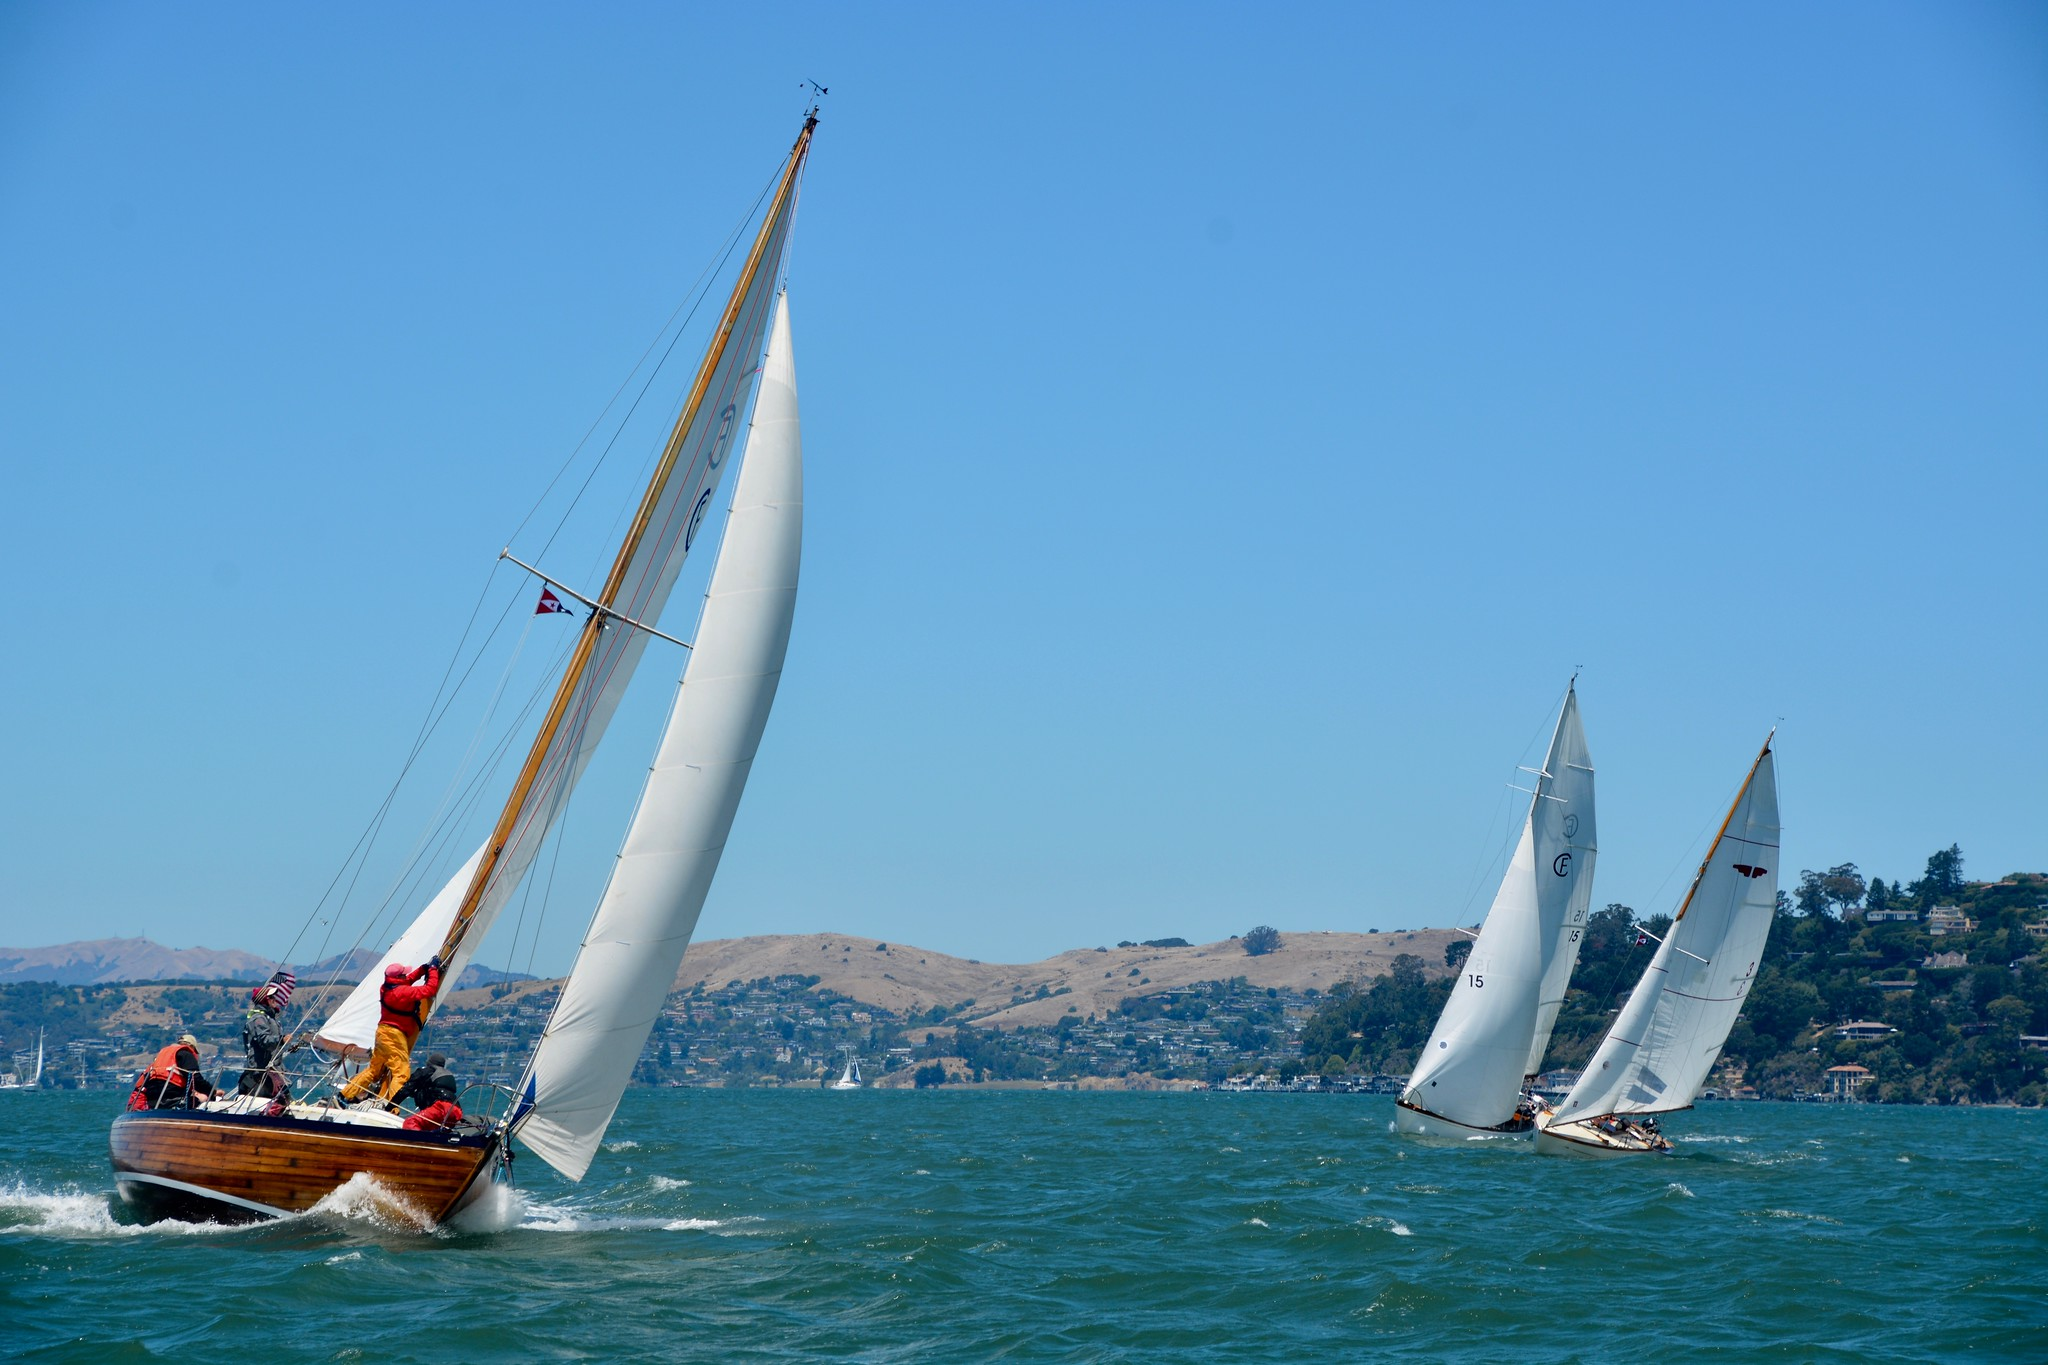 Mistress ii leads Hana at the first mark in the Belvedere Classic.